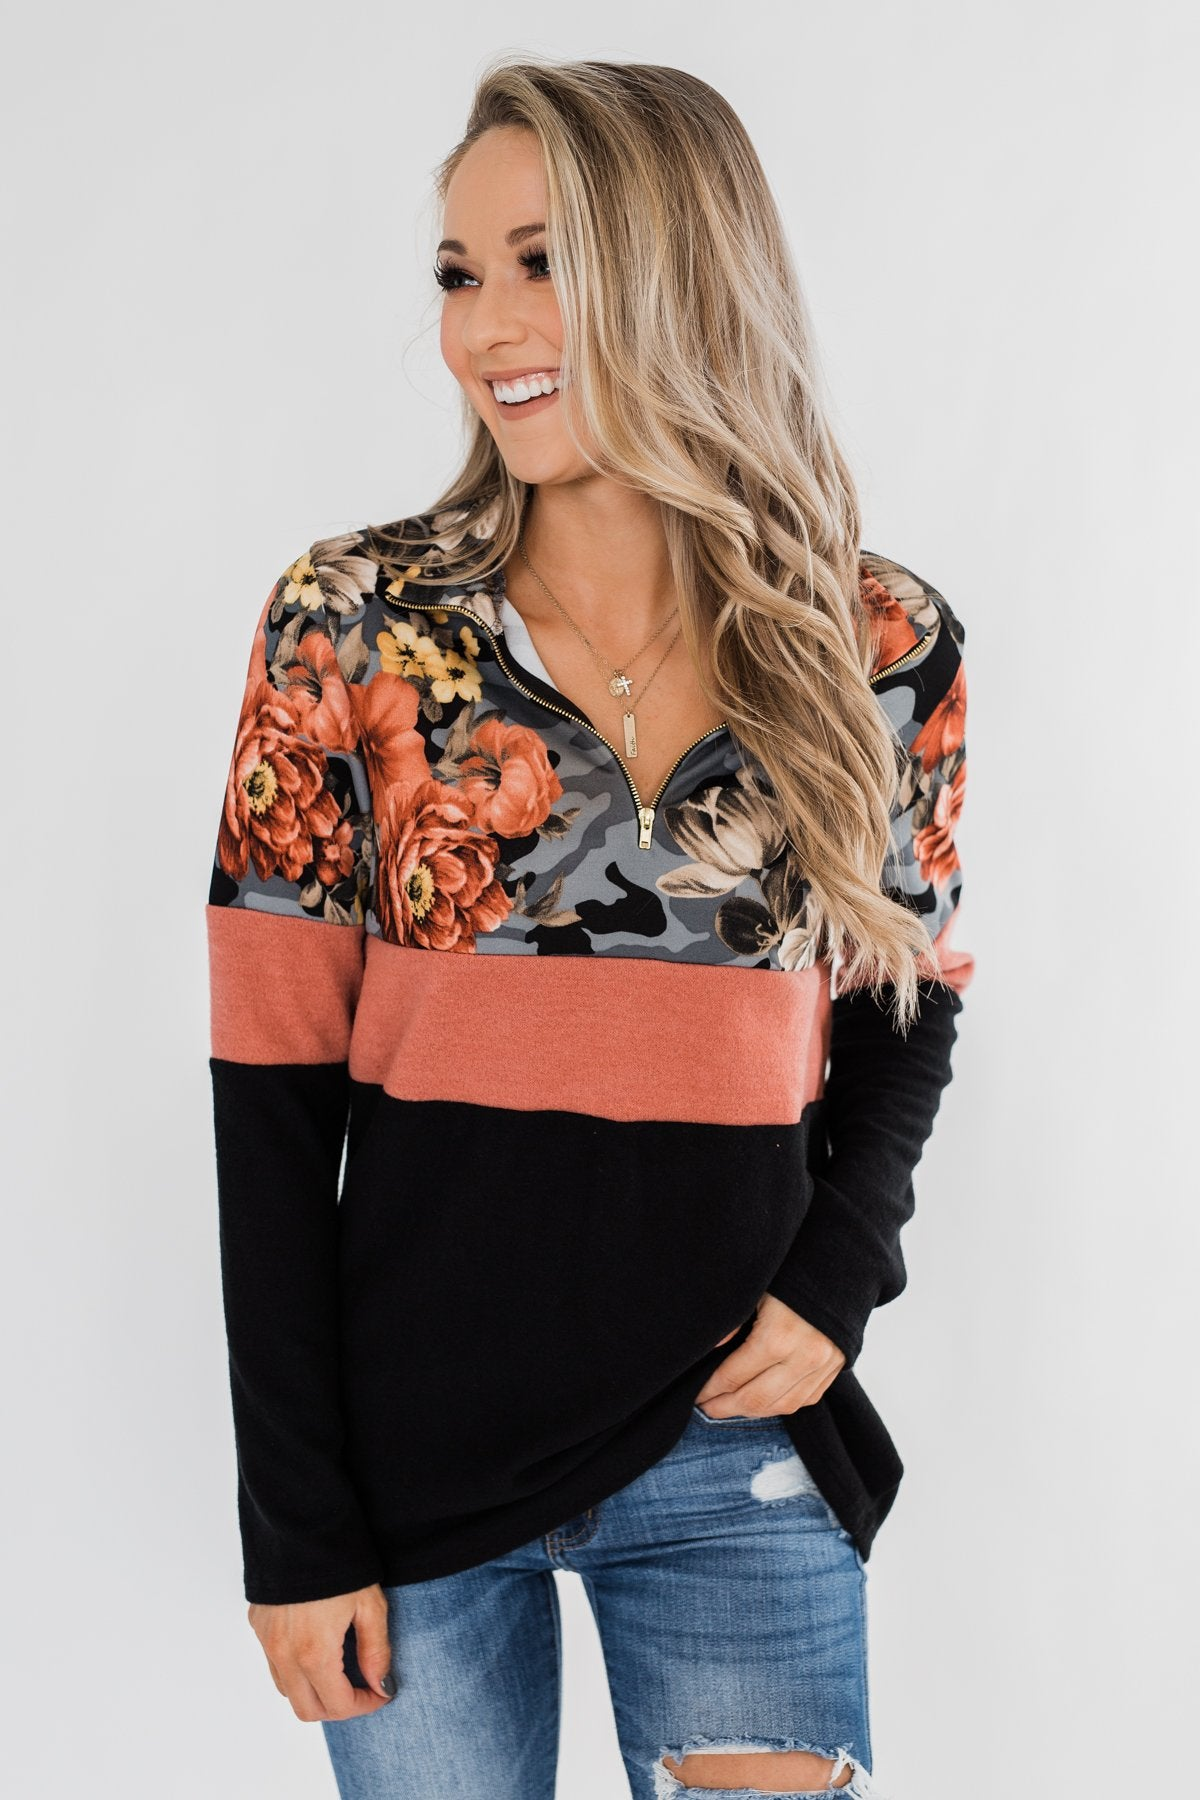 Never Ending Love Quarter Zip Pullover- Black, Camo, & Floral